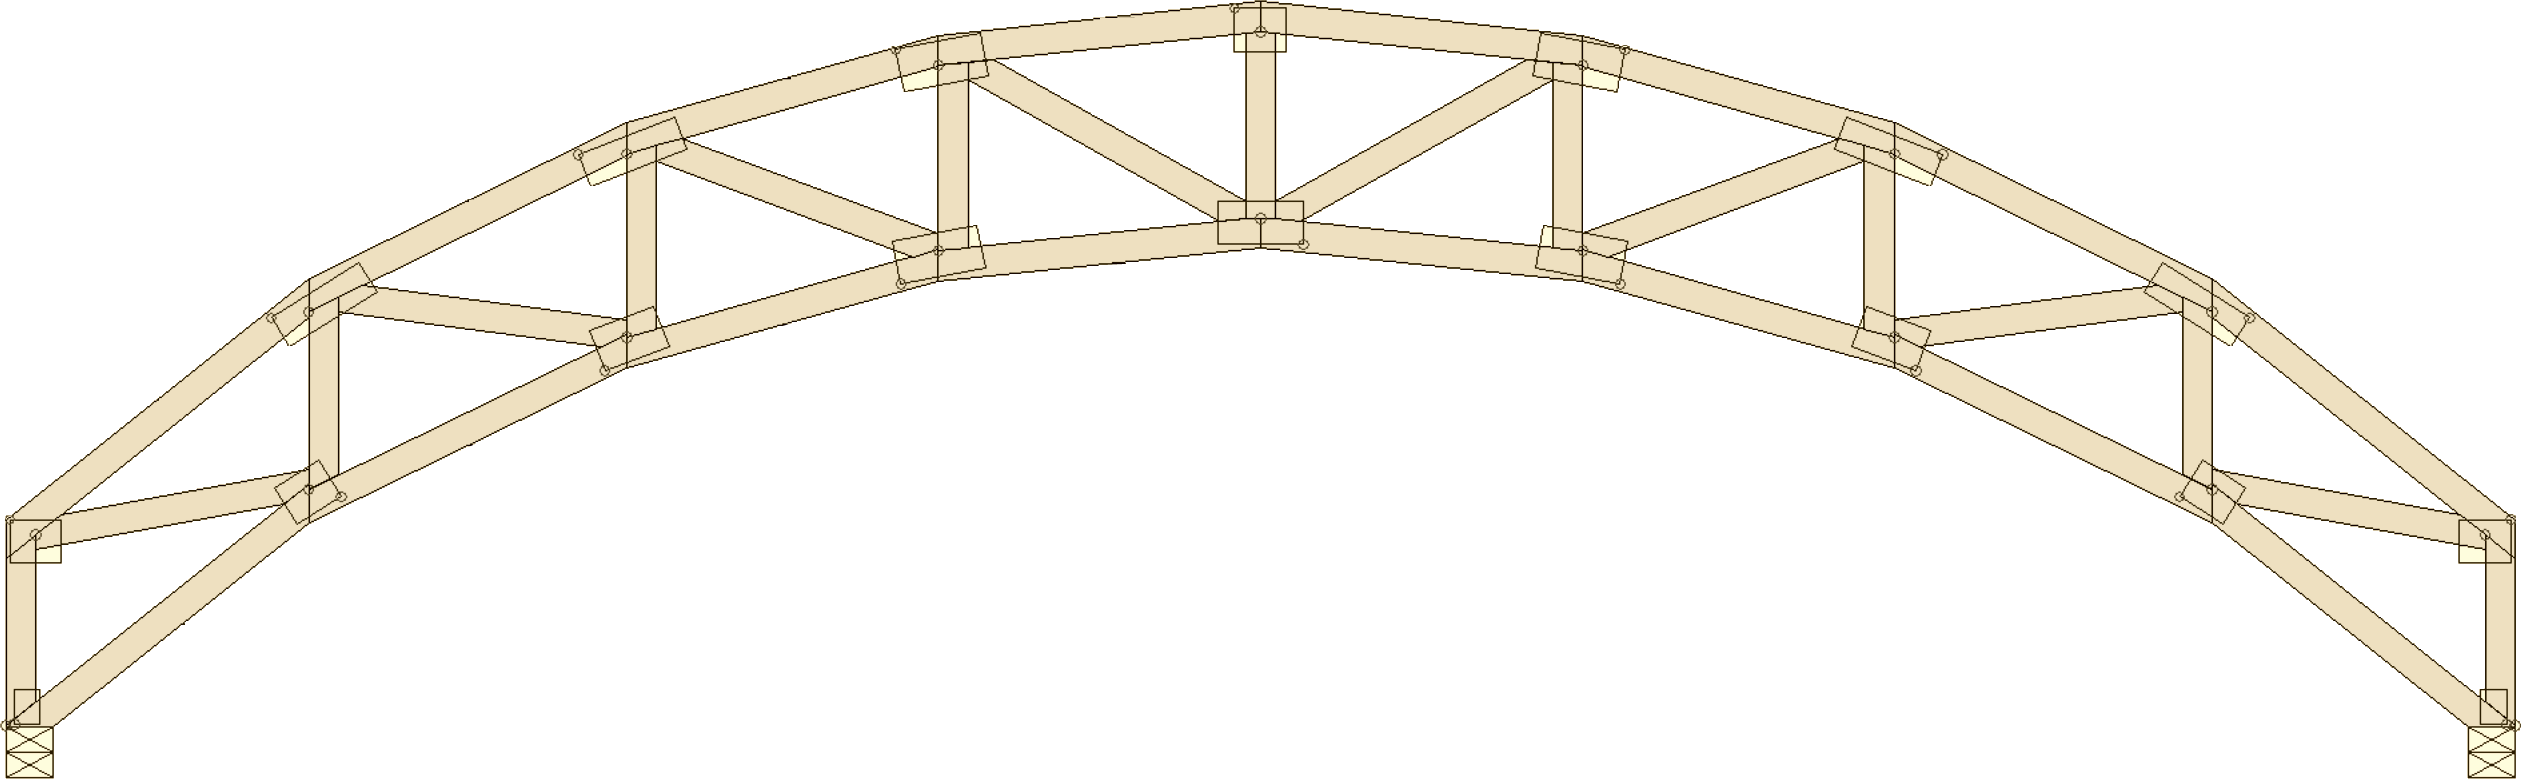 Truss Types - Prairie Truss